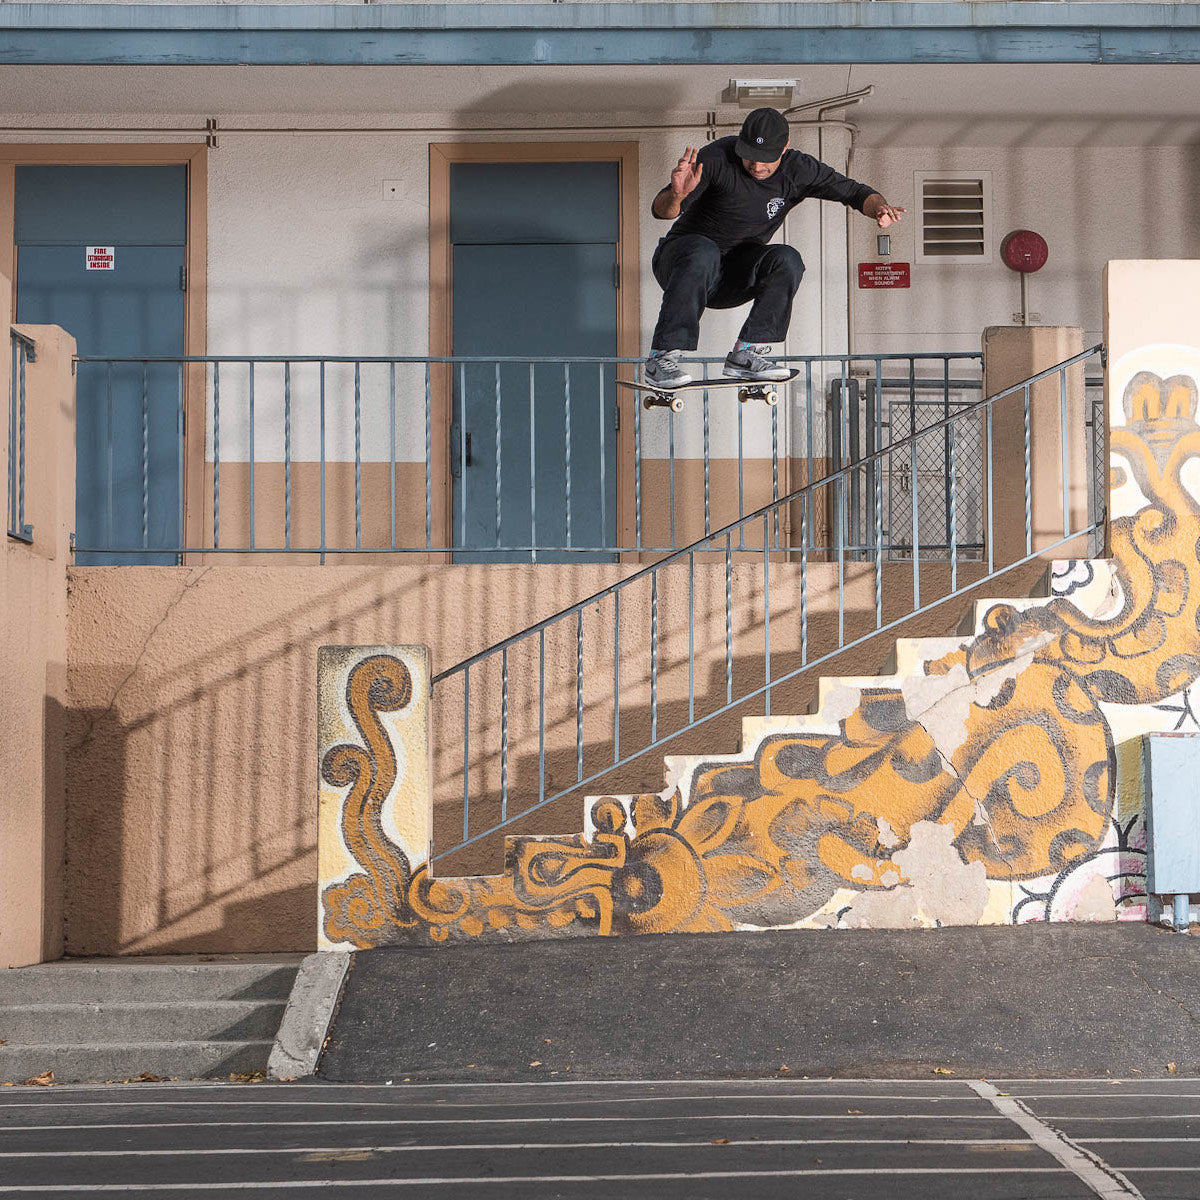 USA Skateboarding Welcomes Miki Vuckovich and Andrew Nicolaus